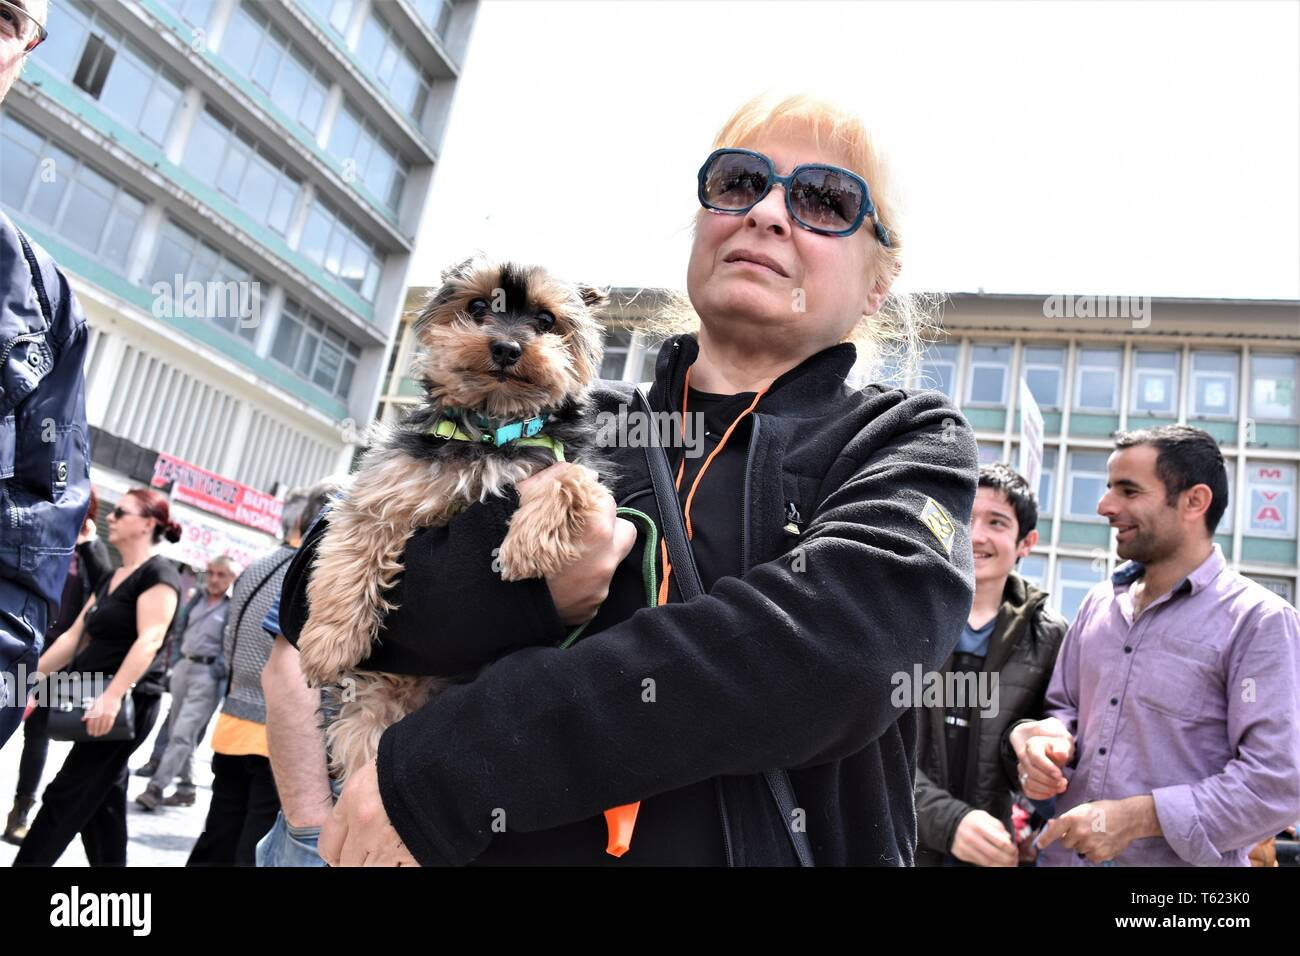 Ankara, Turkey. 28th Apr, 2019. A demonstrator holds her dog during a protest for animal rights. Credit: Altan Gocher/ZUMA Wire/Alamy Live News - Stock Image